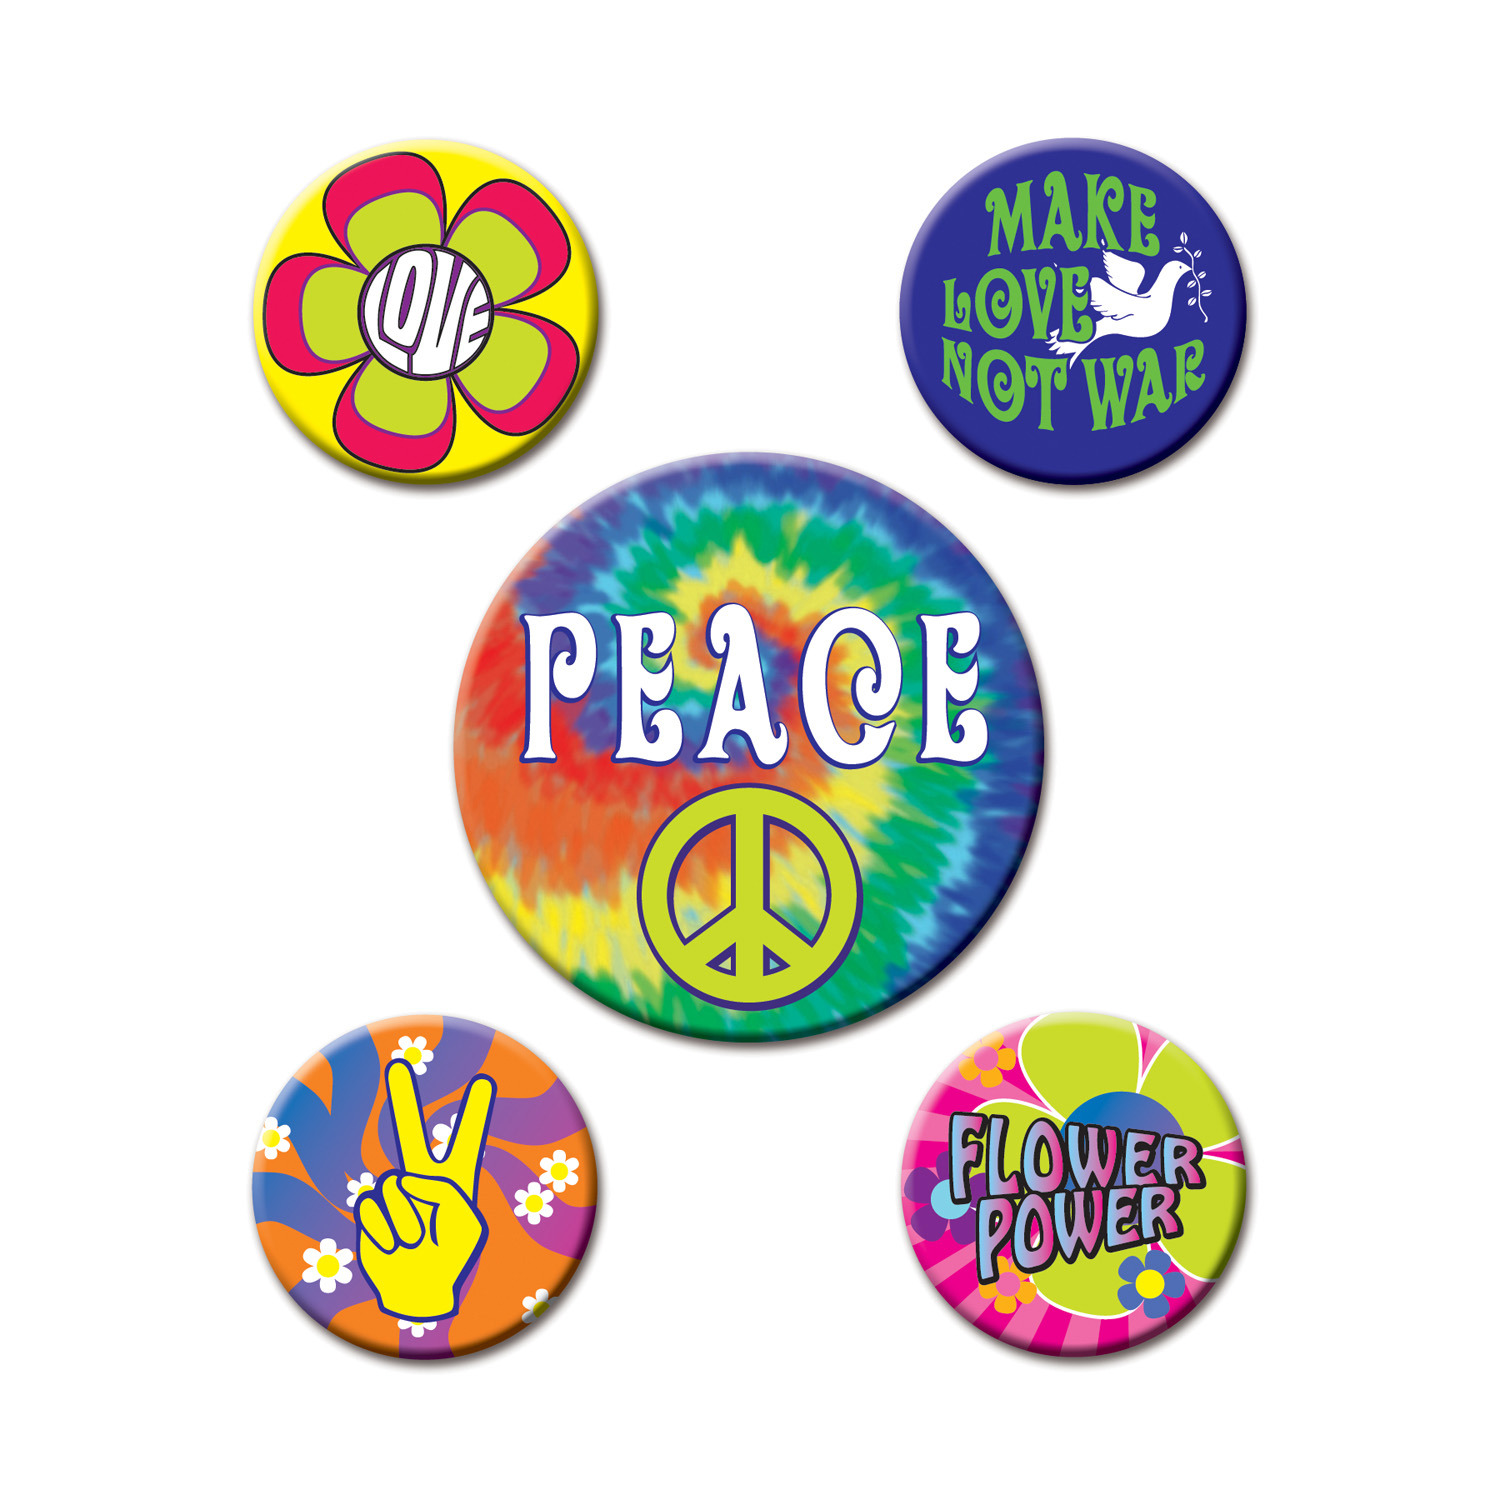 1960s peace buttons that are tie-dye